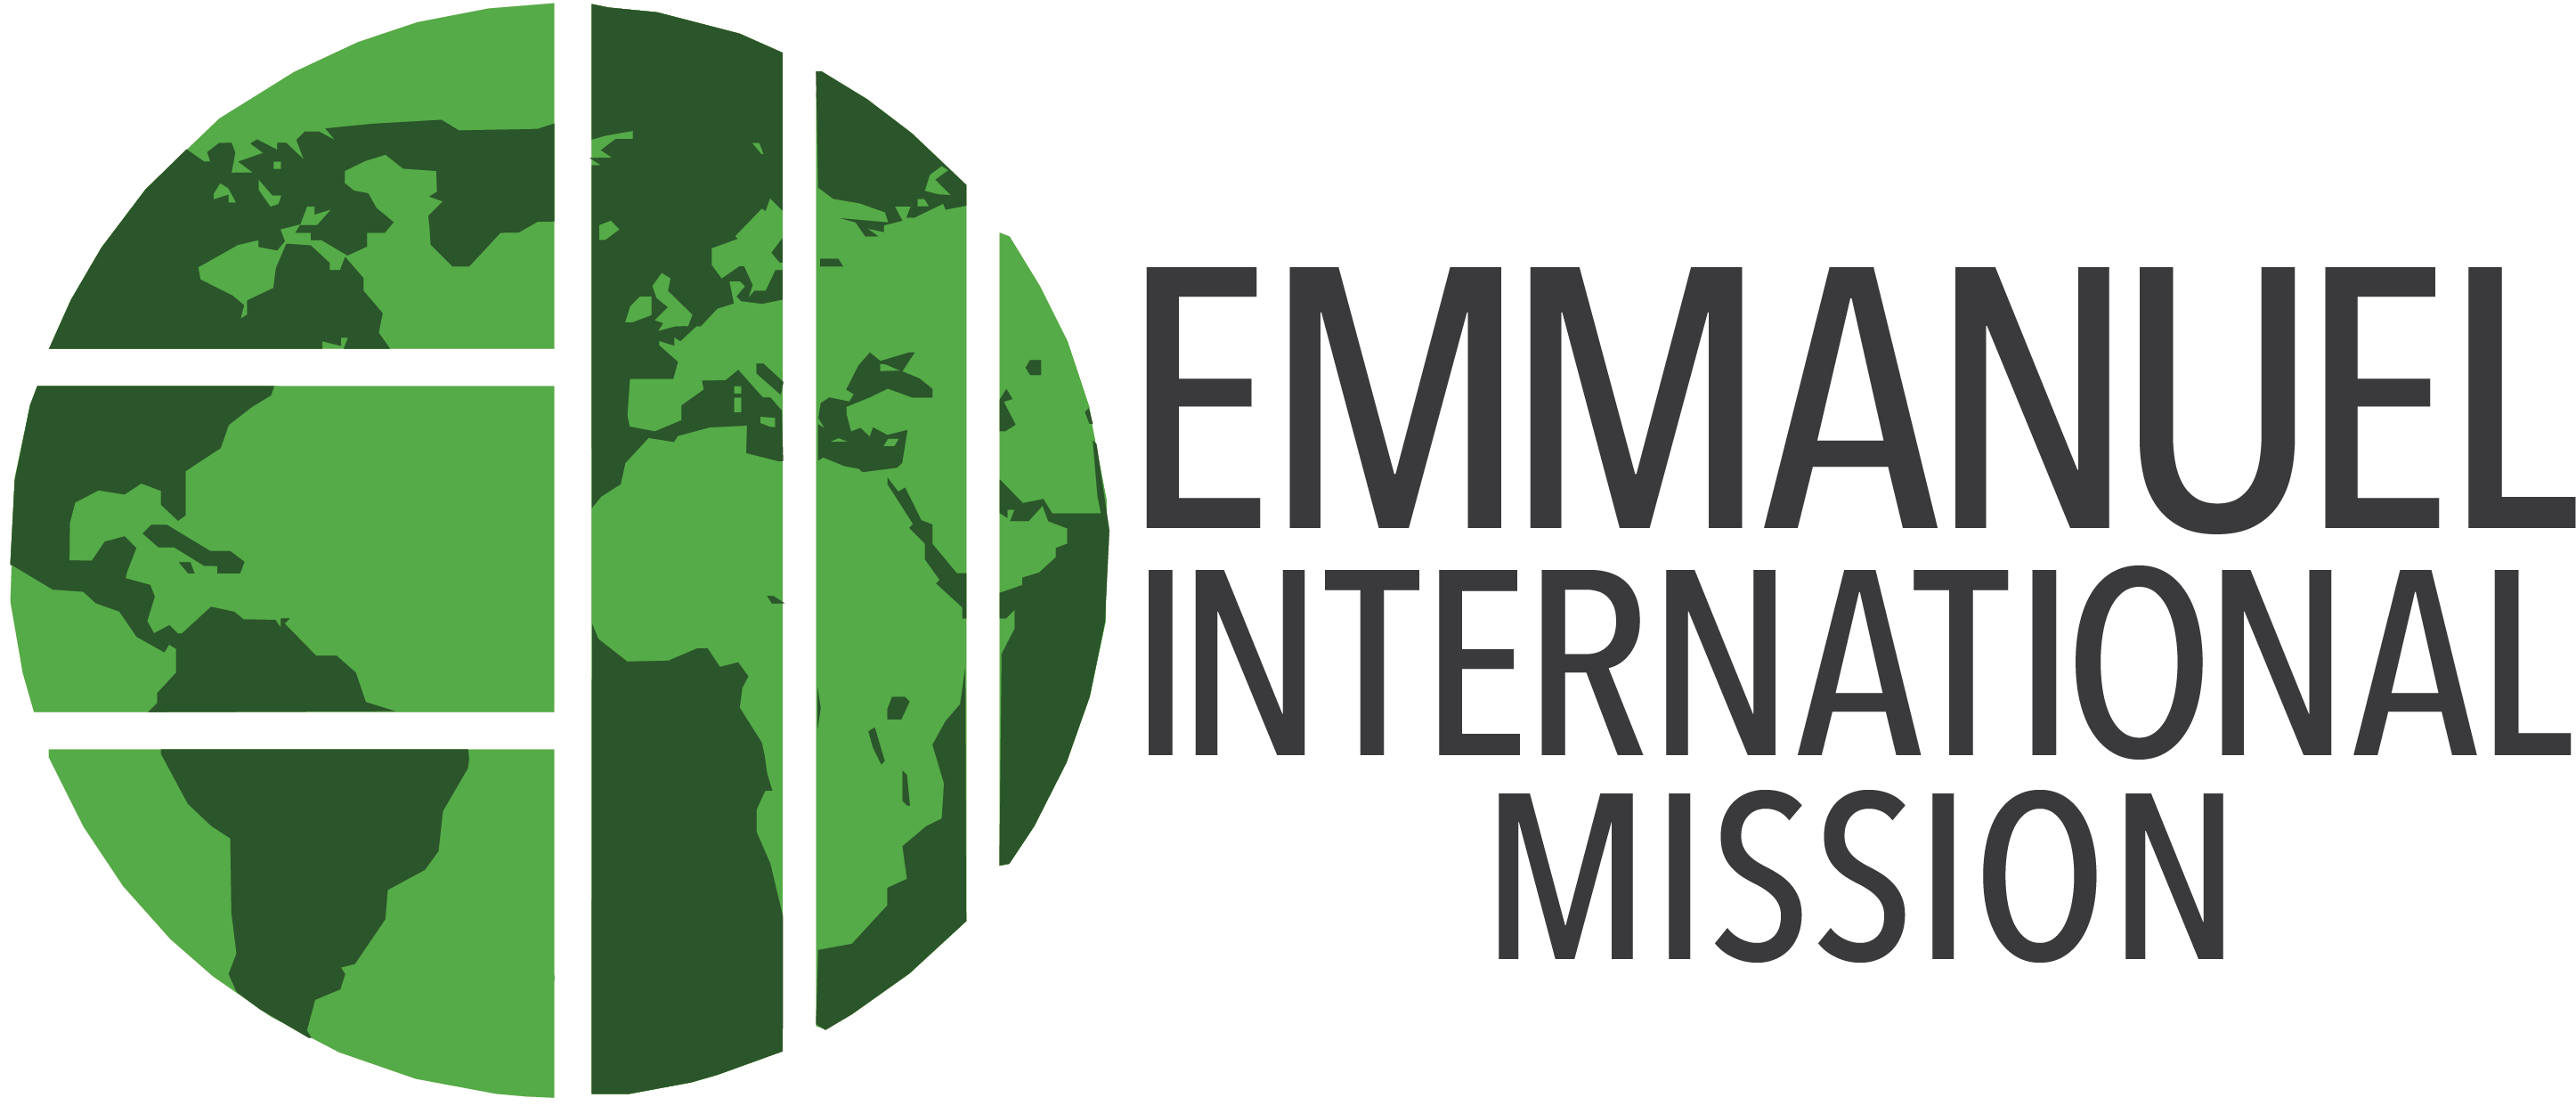 EMMANUEL INTERNATIONAL MISSION